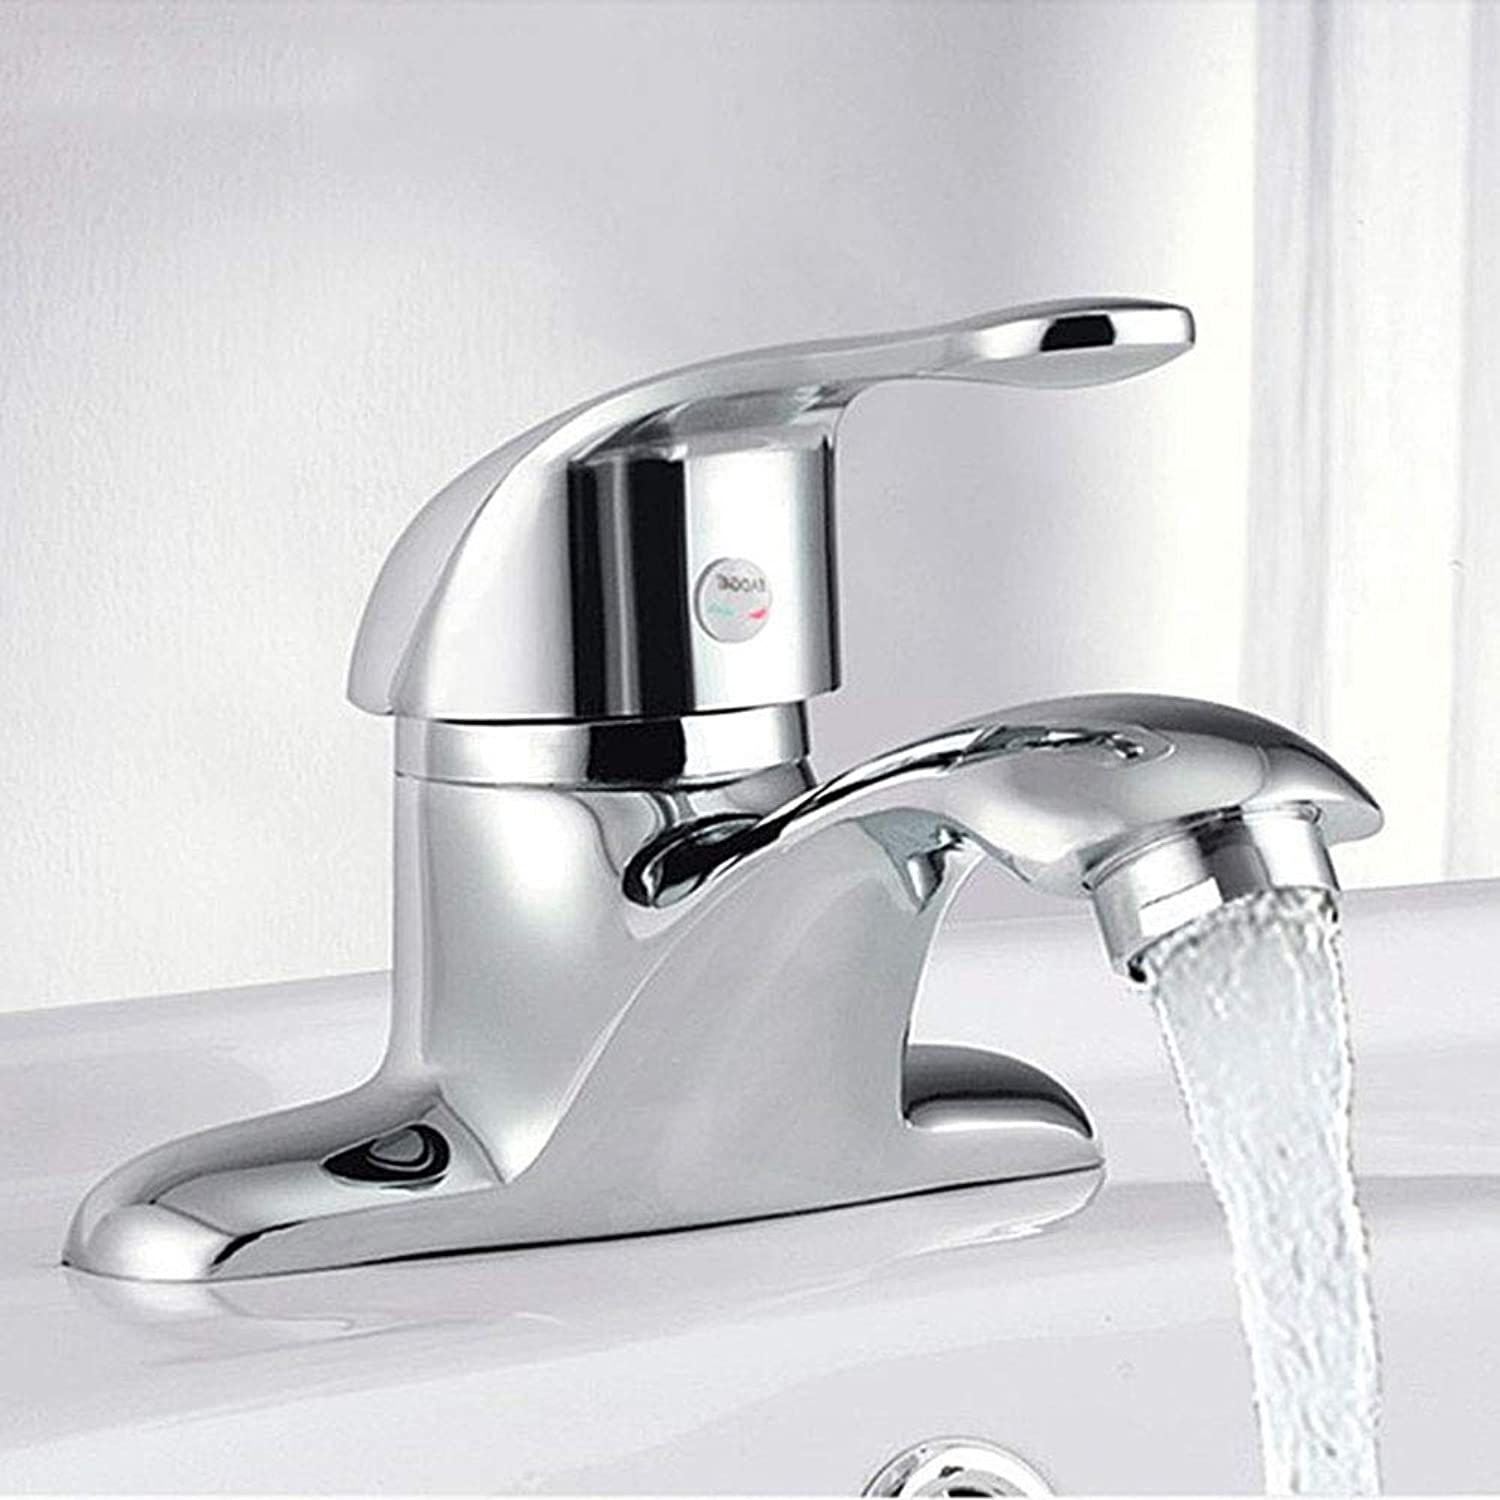 Gyy-tap Chrome Bathroom Mixer Fauce, Double Bathroom Taps Copper Washbasin Basin Faucet Basin Hot And Cold Water Faucet